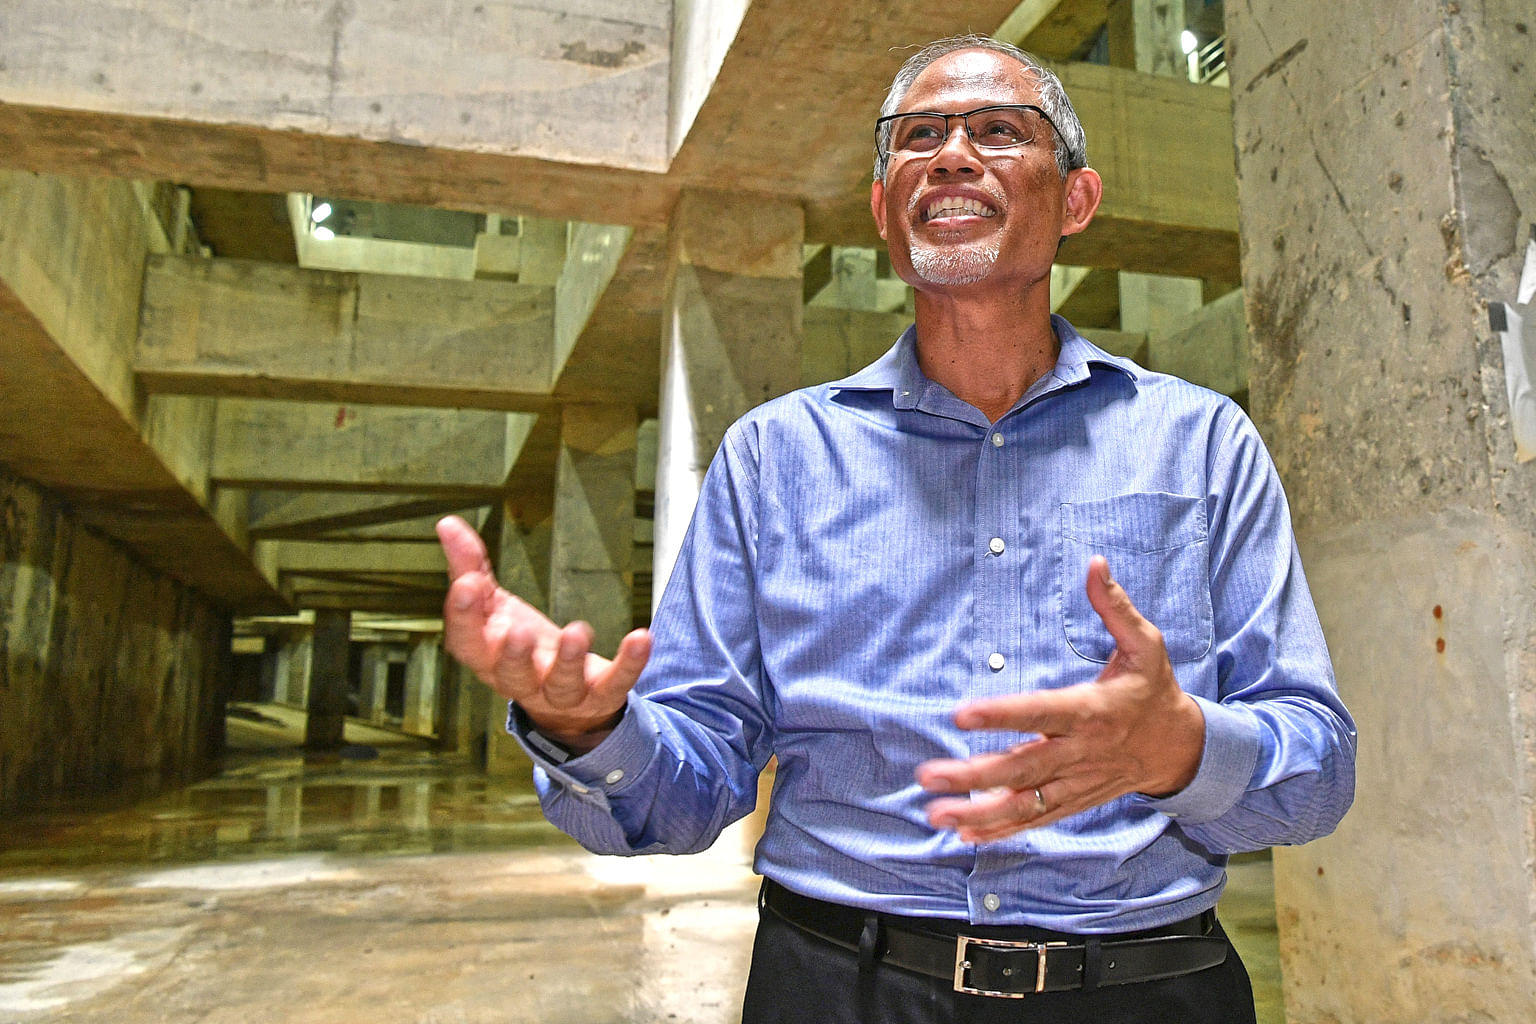 Mr Masagos Zulkifli (above) at the Stamford Detention Tank (left), which can hold up to 38,000 cubic m of storm water, an amount equivalent to 15 Olympic-sized swimming pools, on Friday.